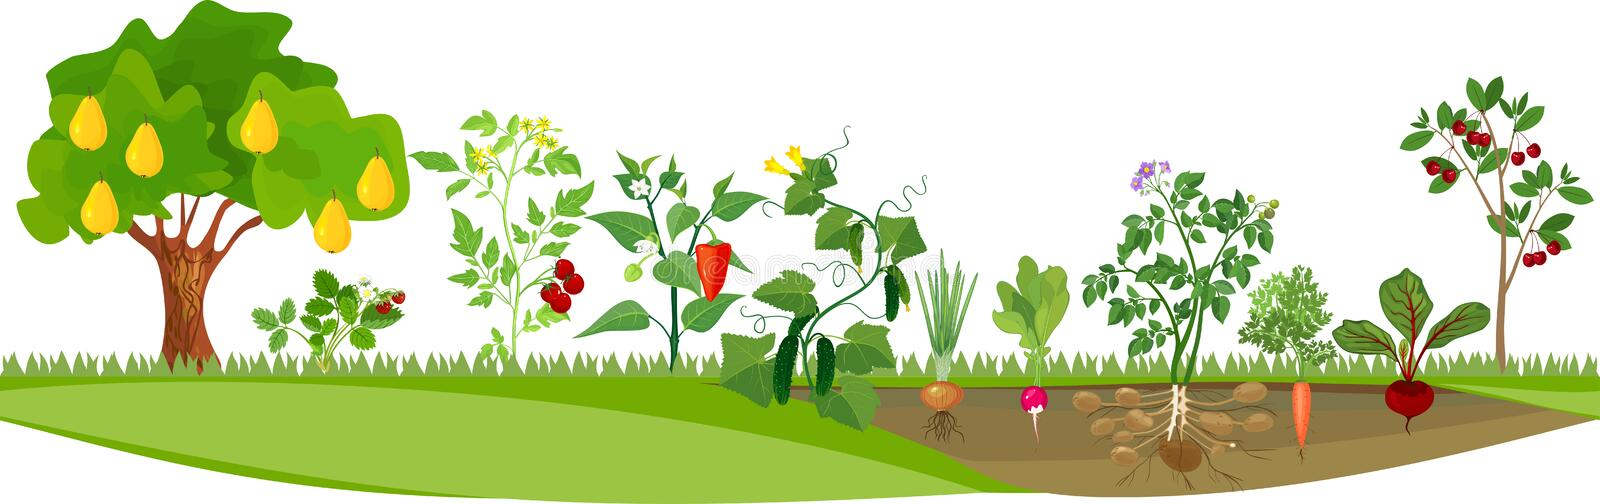 Kitchen garden or vegetable garden with different vegetables and fruit trees stock illustration